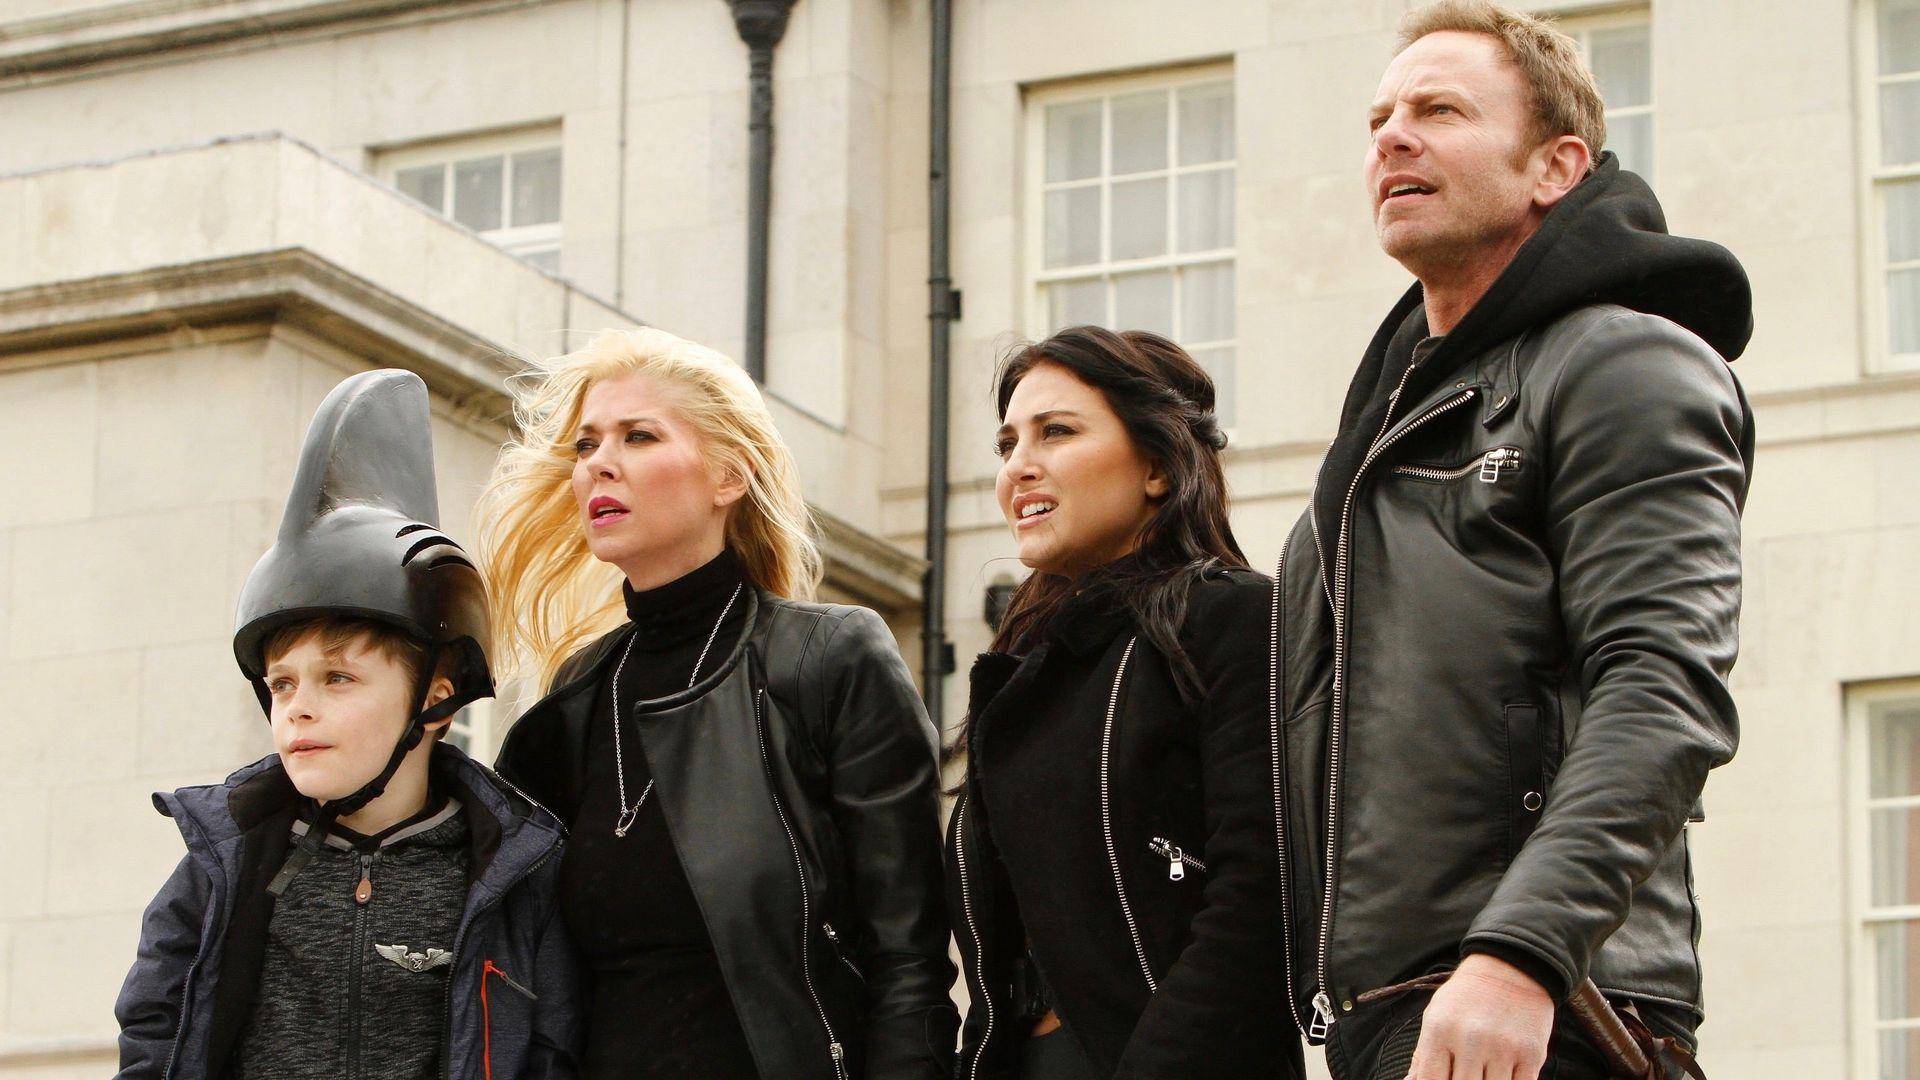 Gil (Billy Barrett), April (Tara Reid), Nova (Cassie Scerbo) and Fin Shepard (Ian Ziering) in Sharknado 5 Global Swarming (2017)